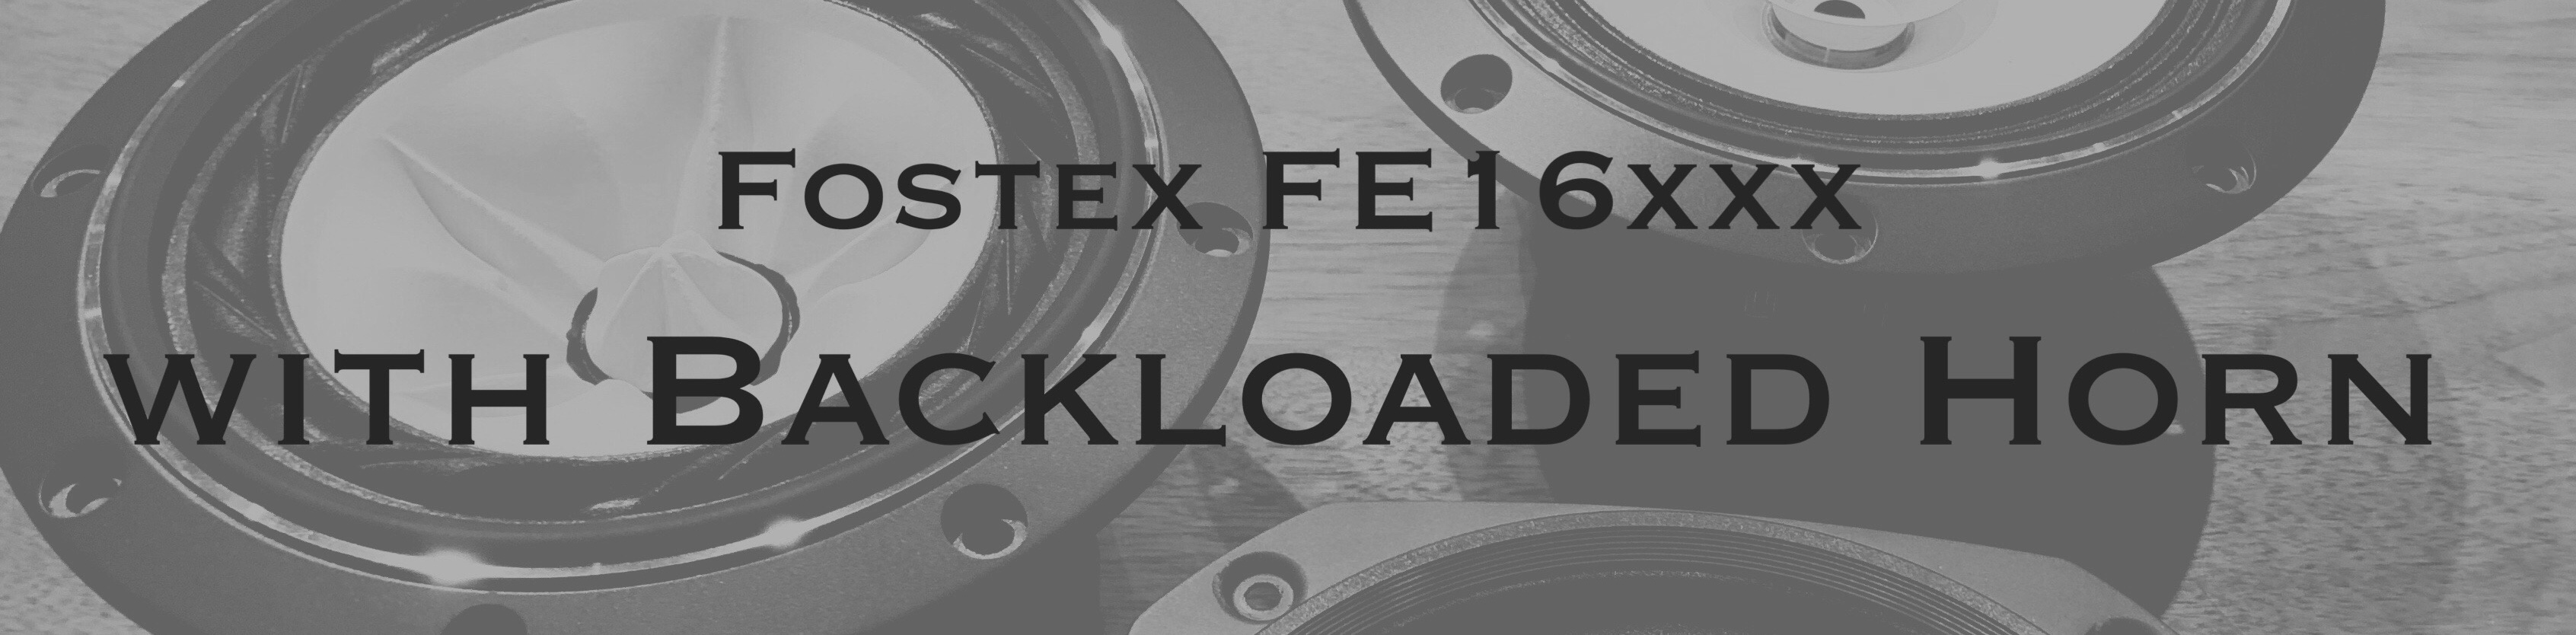 Fostex FE16xxx with Backloaded Horn